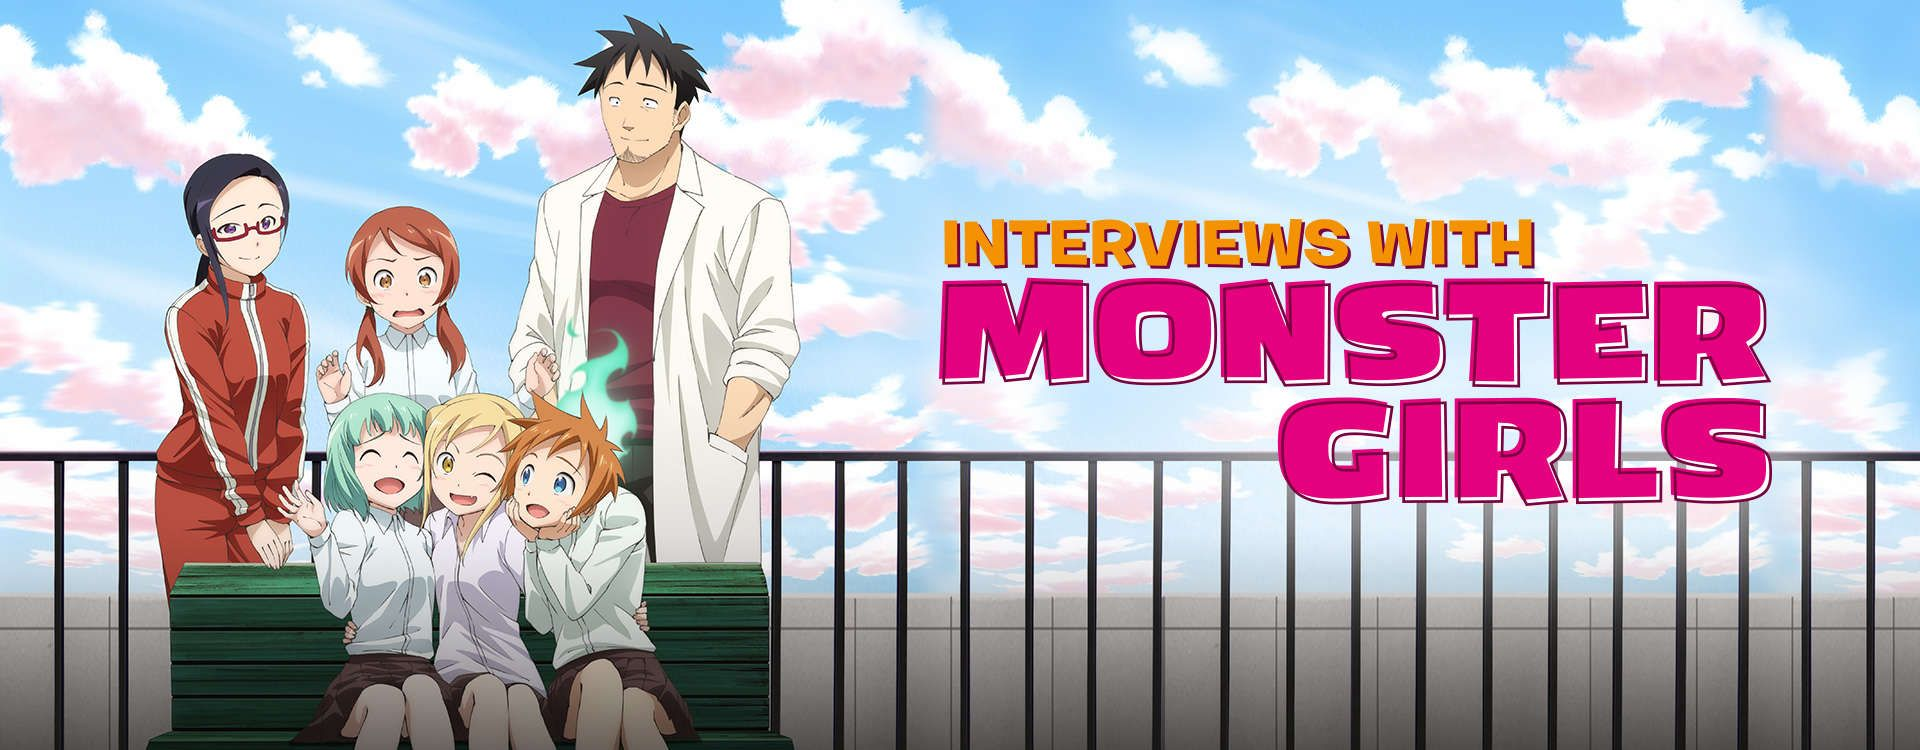 Interviews with monster girls anime